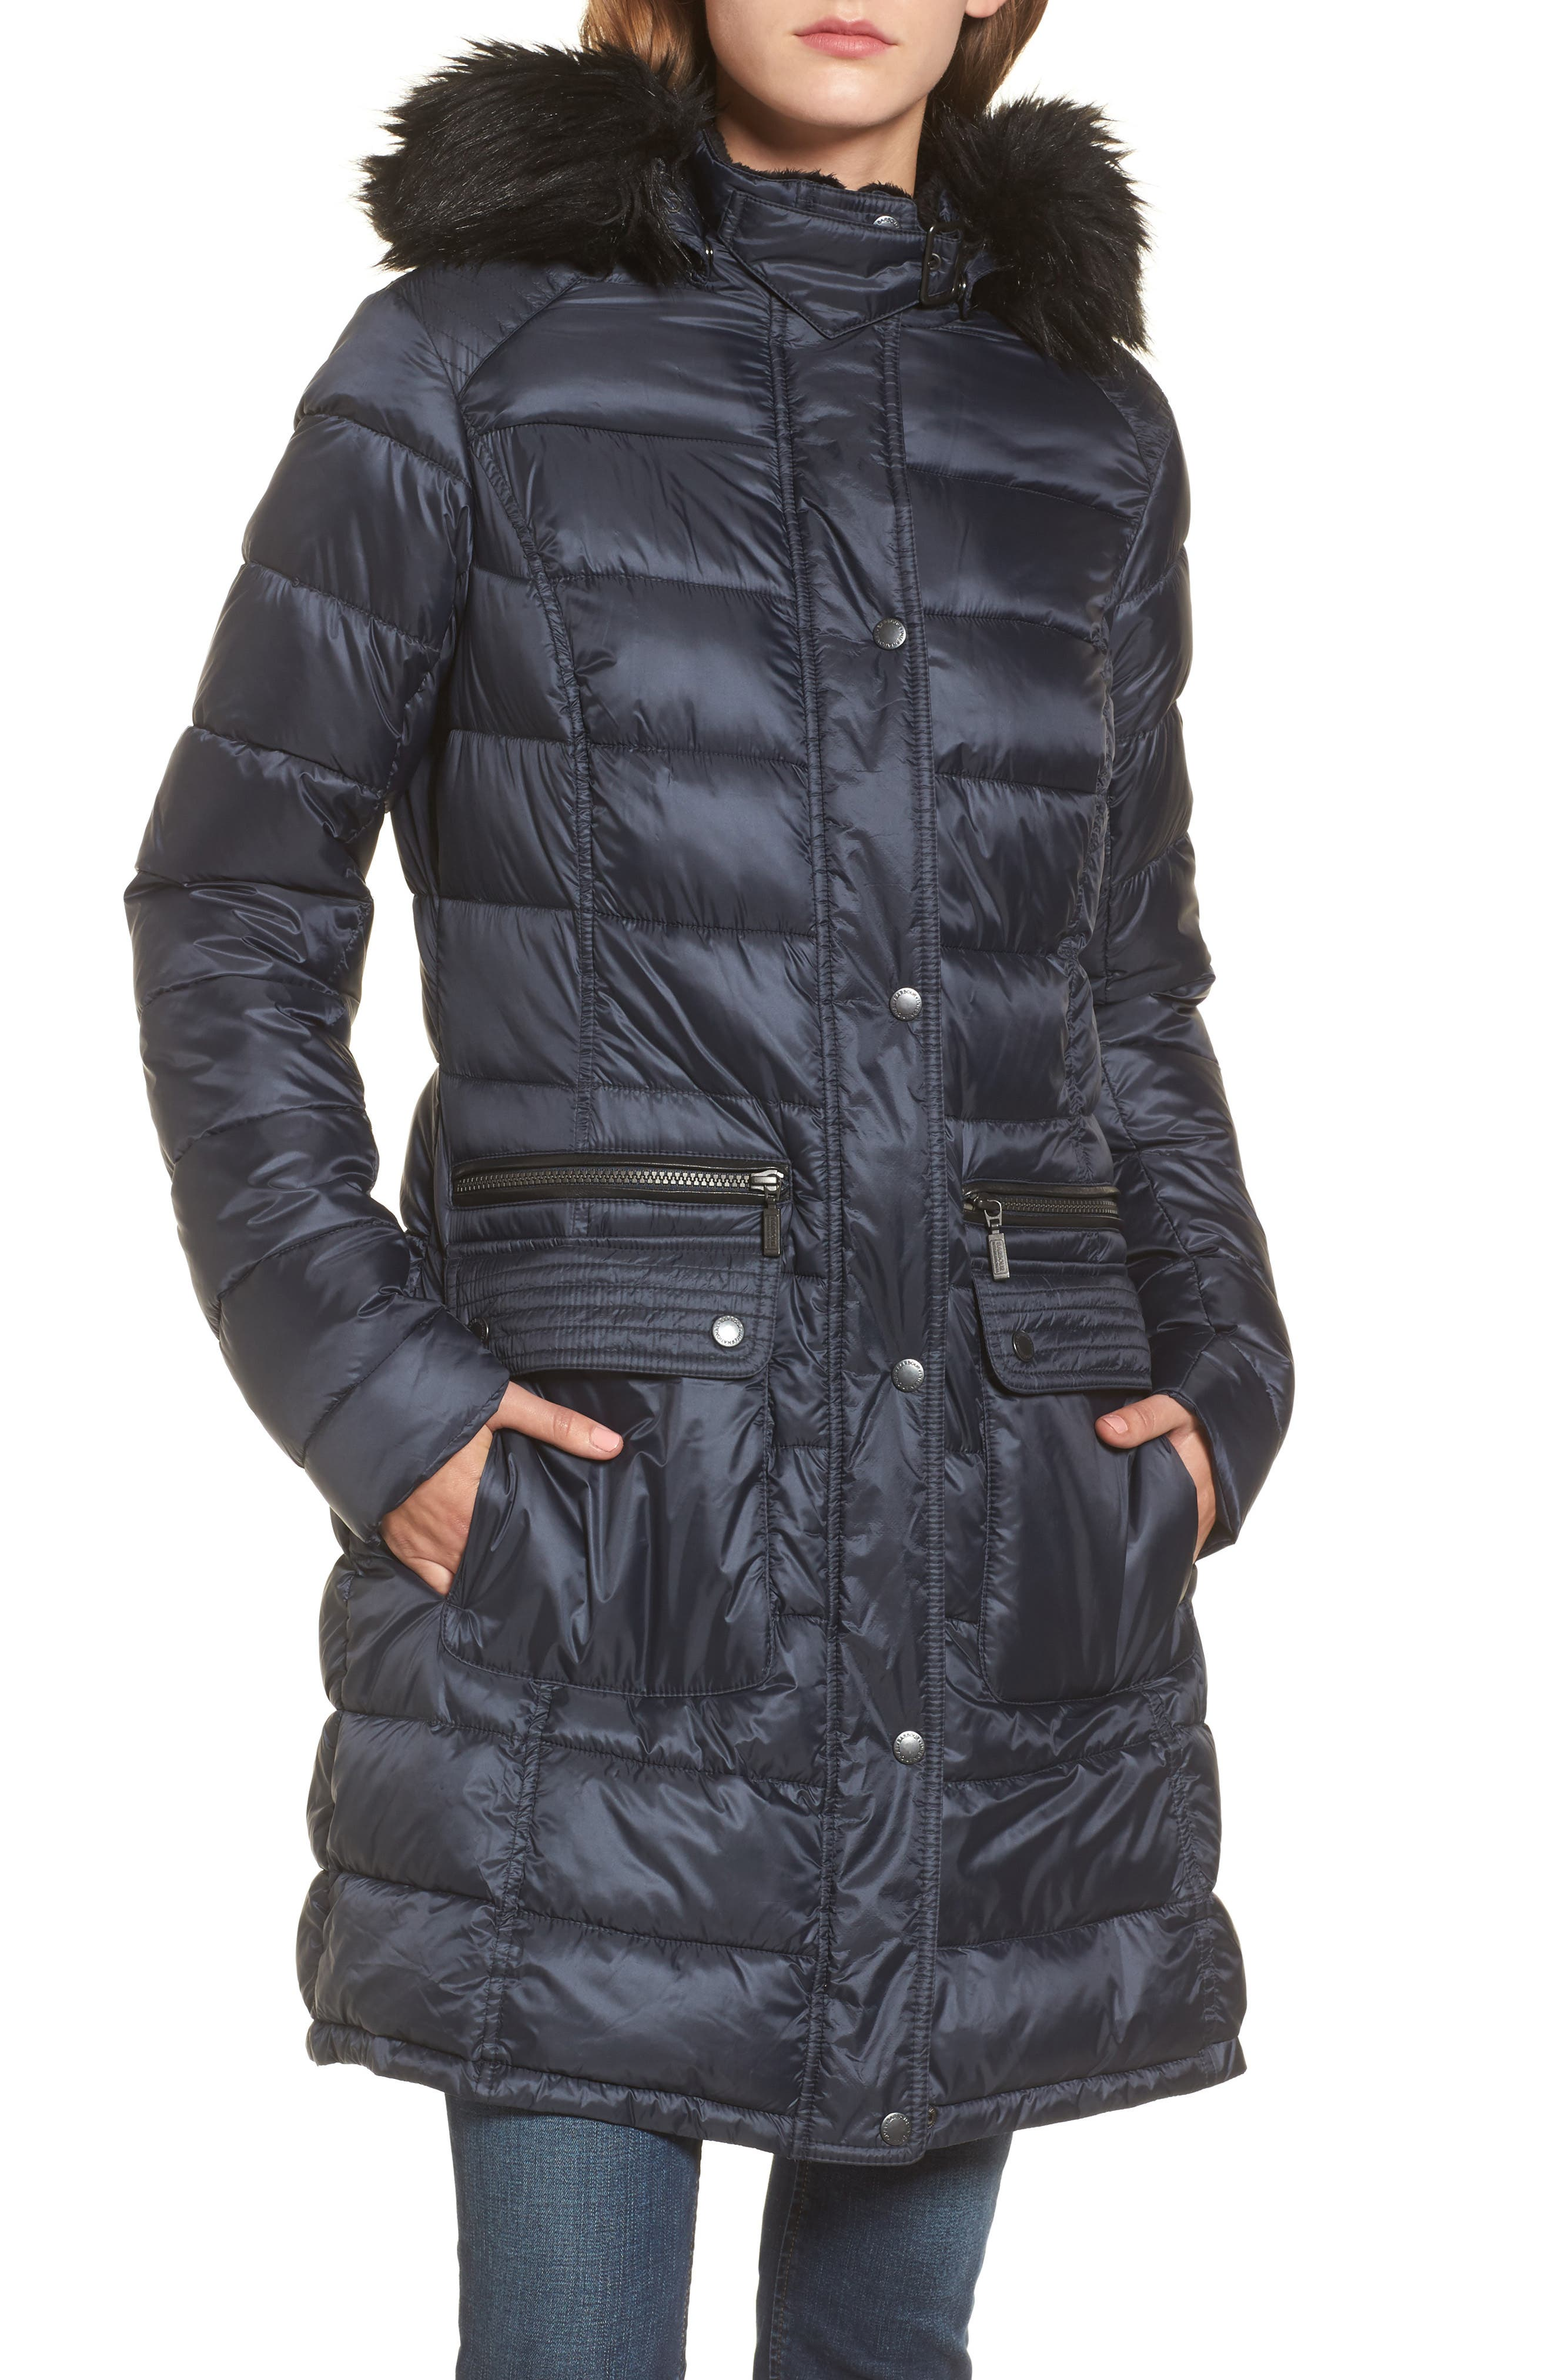 Main Image - Barbour Dunnet Water Resistant Hooded Quilted Coat with Faux Fur Trim